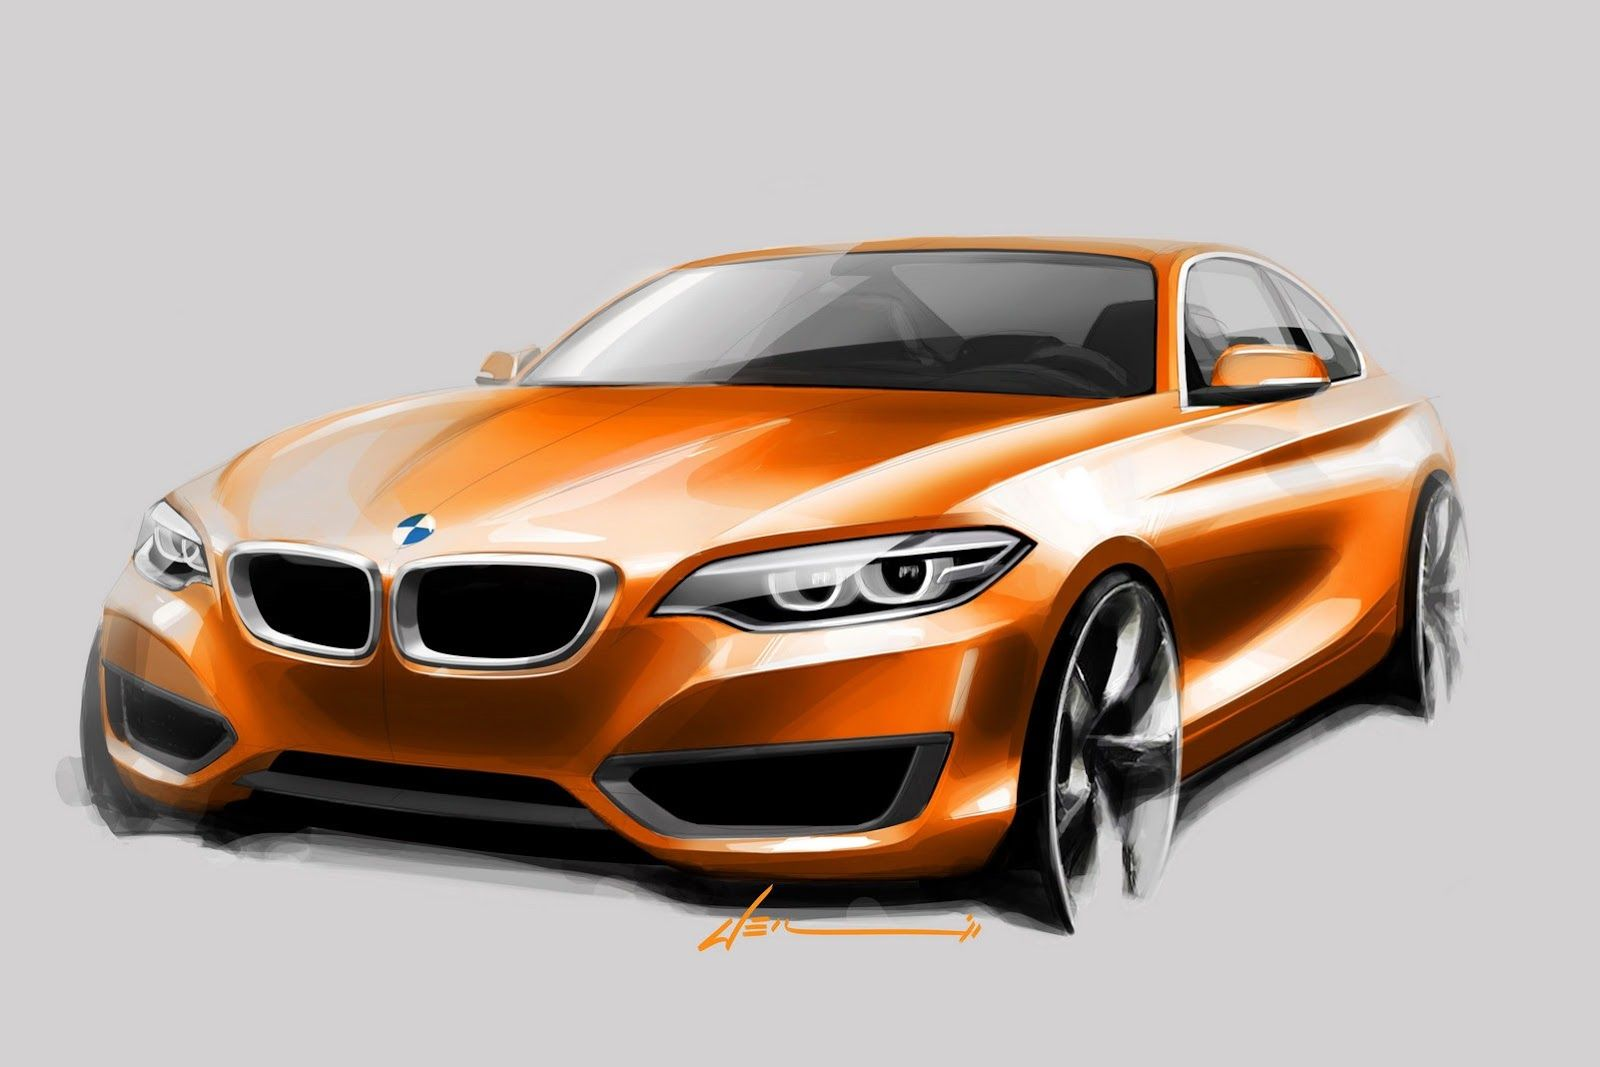 New Bmw 2 Series Coupe Official Revealed And Priced From 33 025 53 Photos Videos Carscoops Bmw Bmw Design Car Drawings